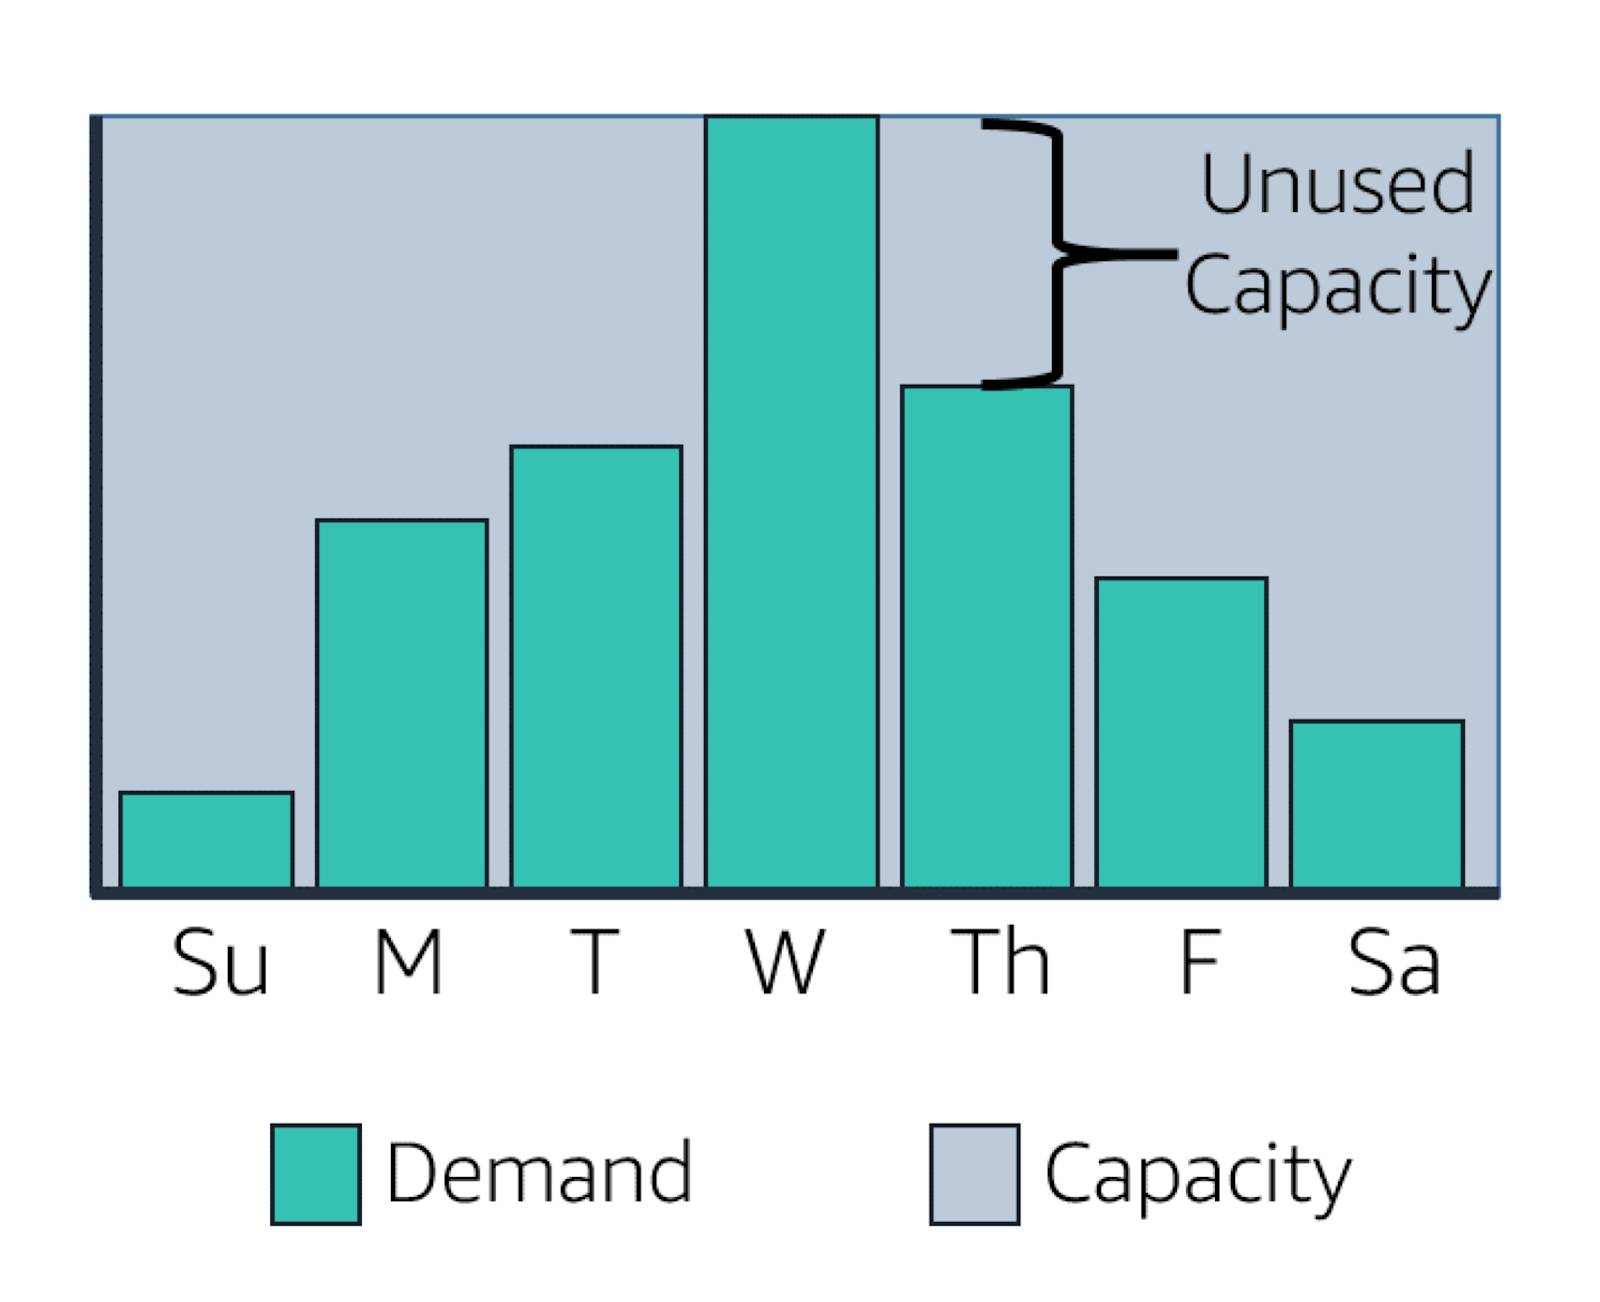 Graph of demand and capacity throughout the week. Demand increases and peaks on Wednesday and then drops off; capacity is high enough to meet demand and goes unused when demand is low.